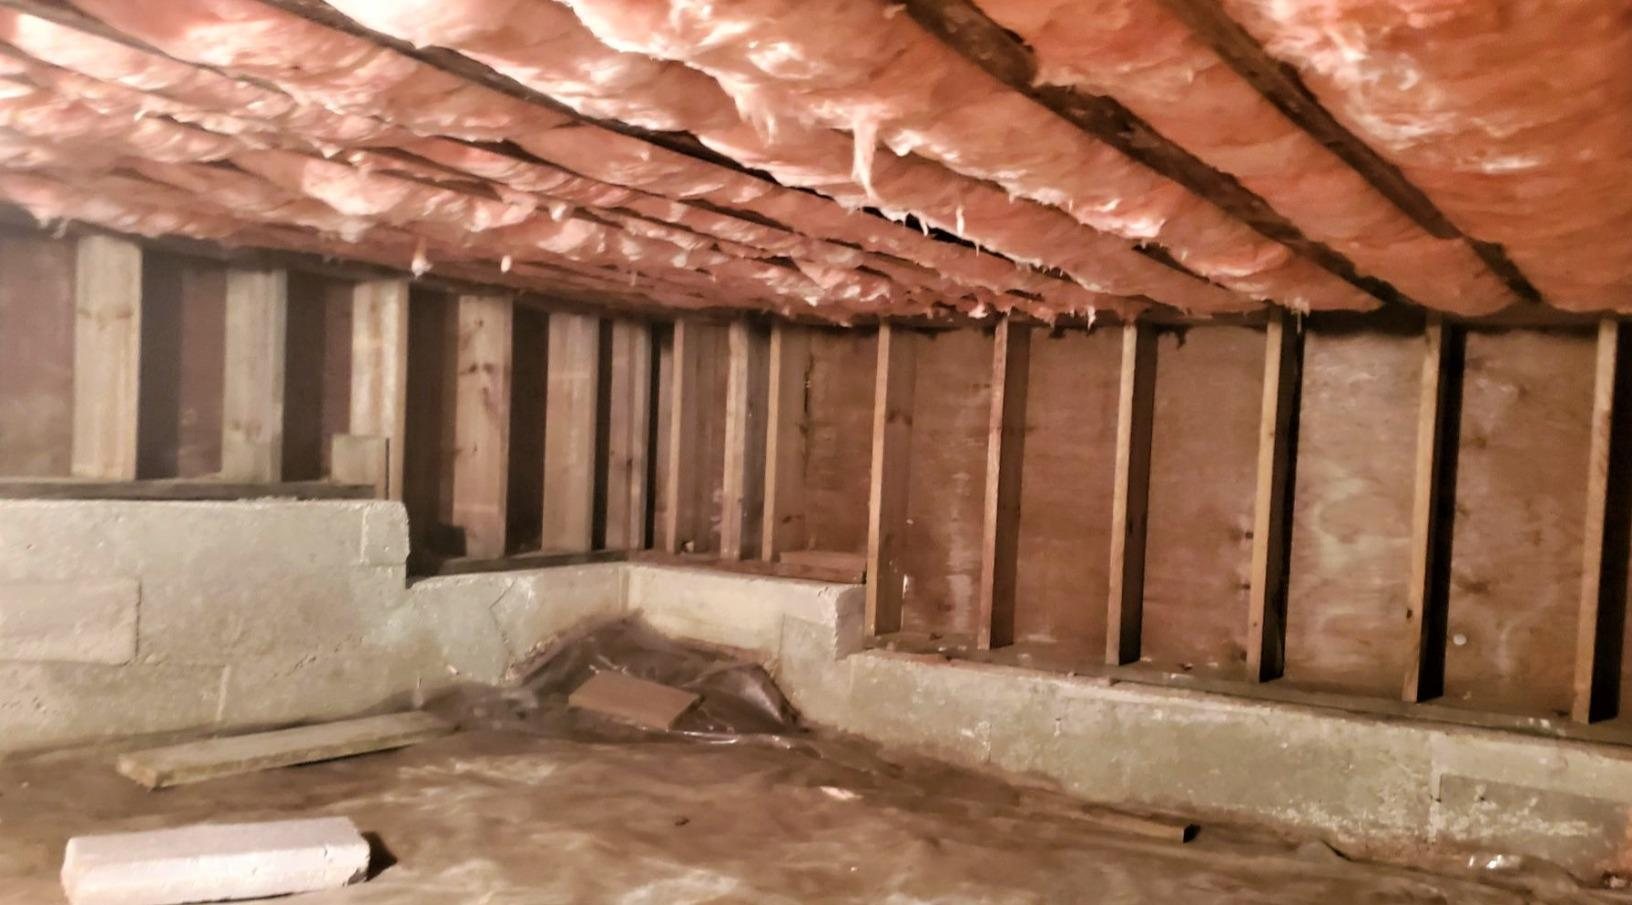 Encapsulation and insulation of a crawl space in Chelsea, Qc - Before Photo